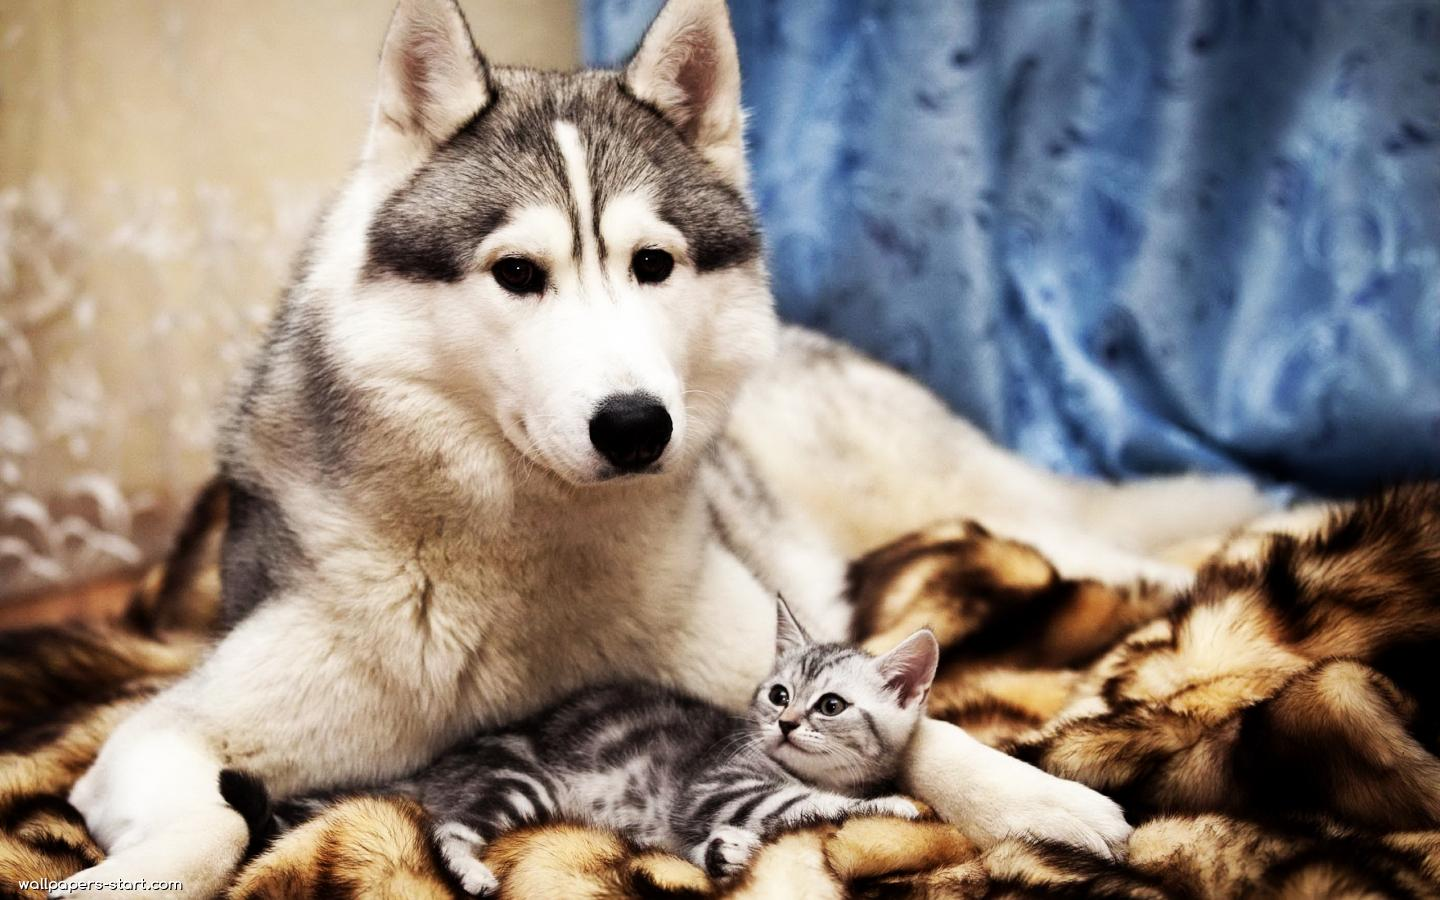 Cats and Dogs Wallpapers Fun Animals Wiki Videos 1440x900